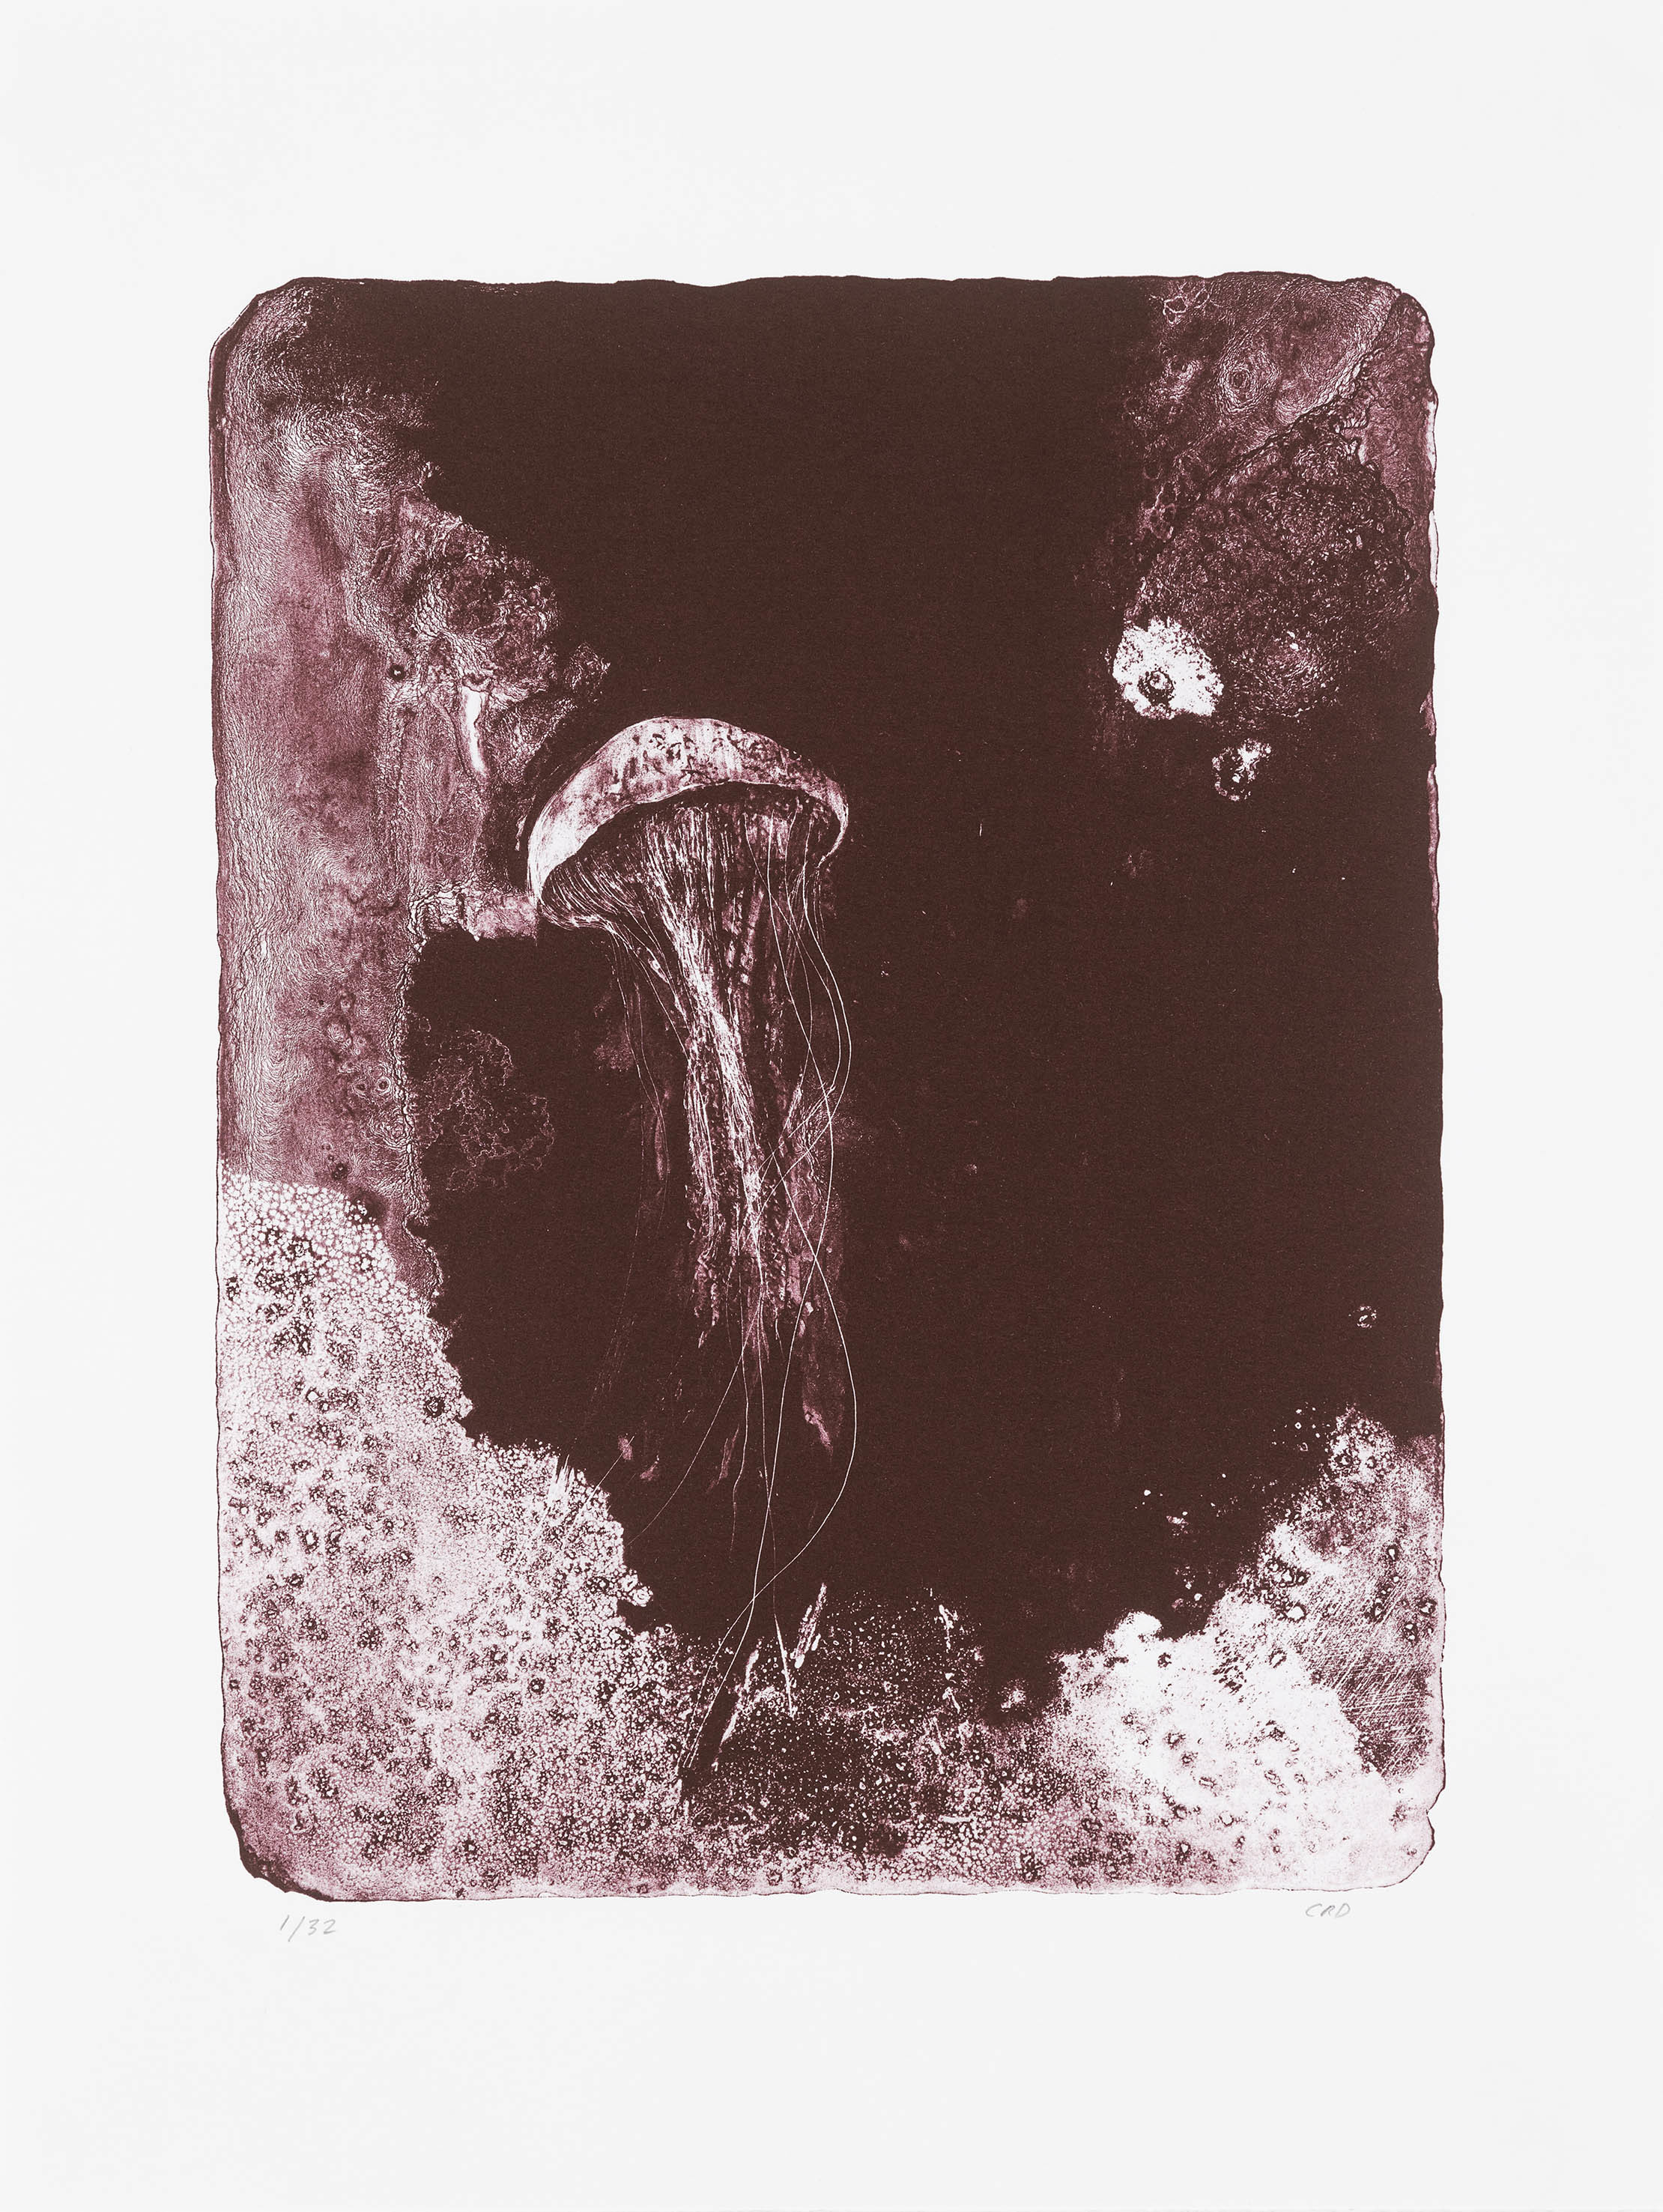 Totem Jellyfish - Lithograph 00026